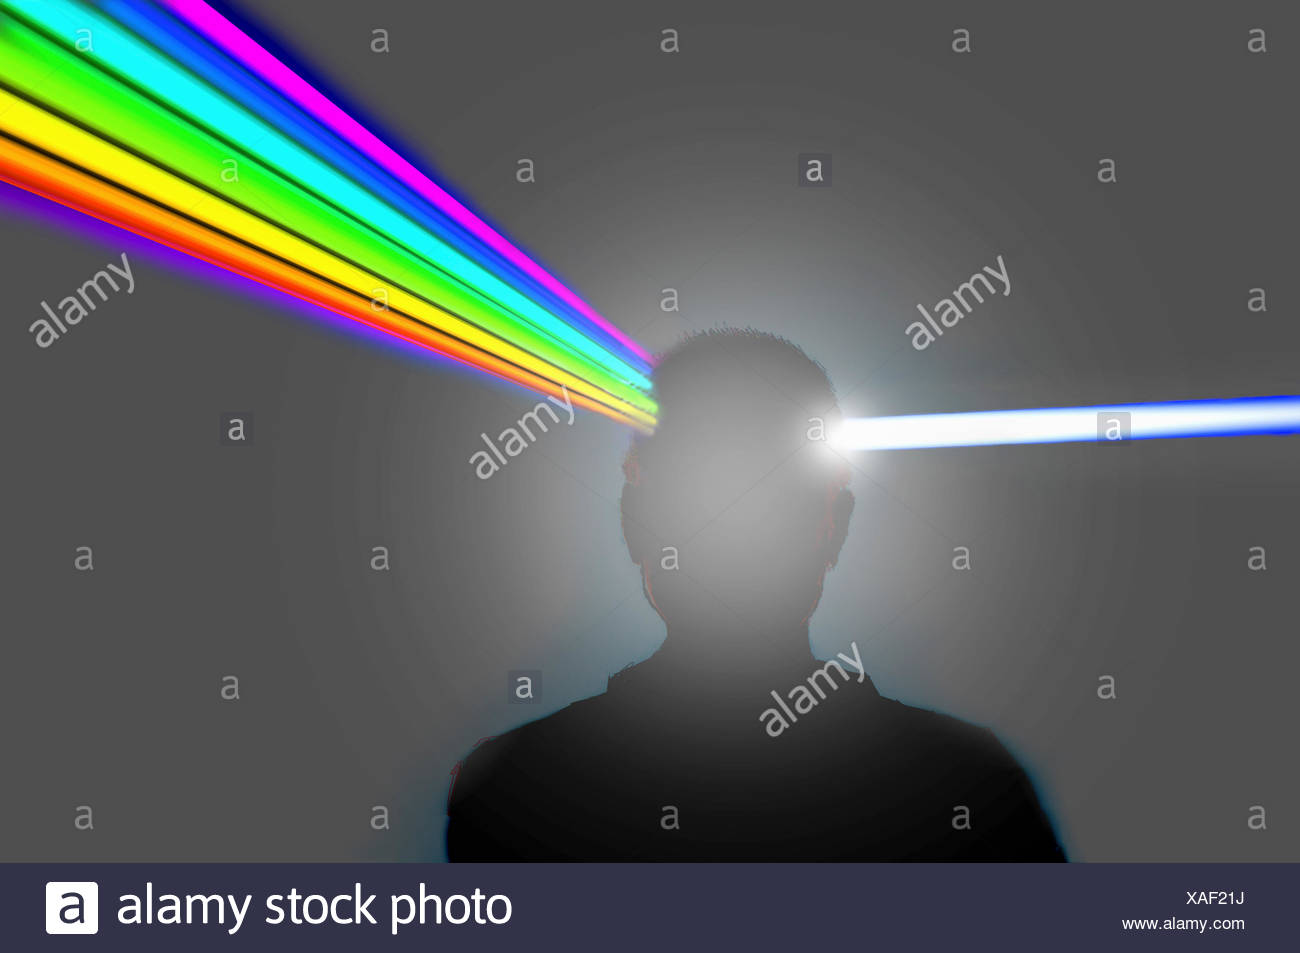 Man's head as prism refracting beam of light into color spectrum - Stock Image